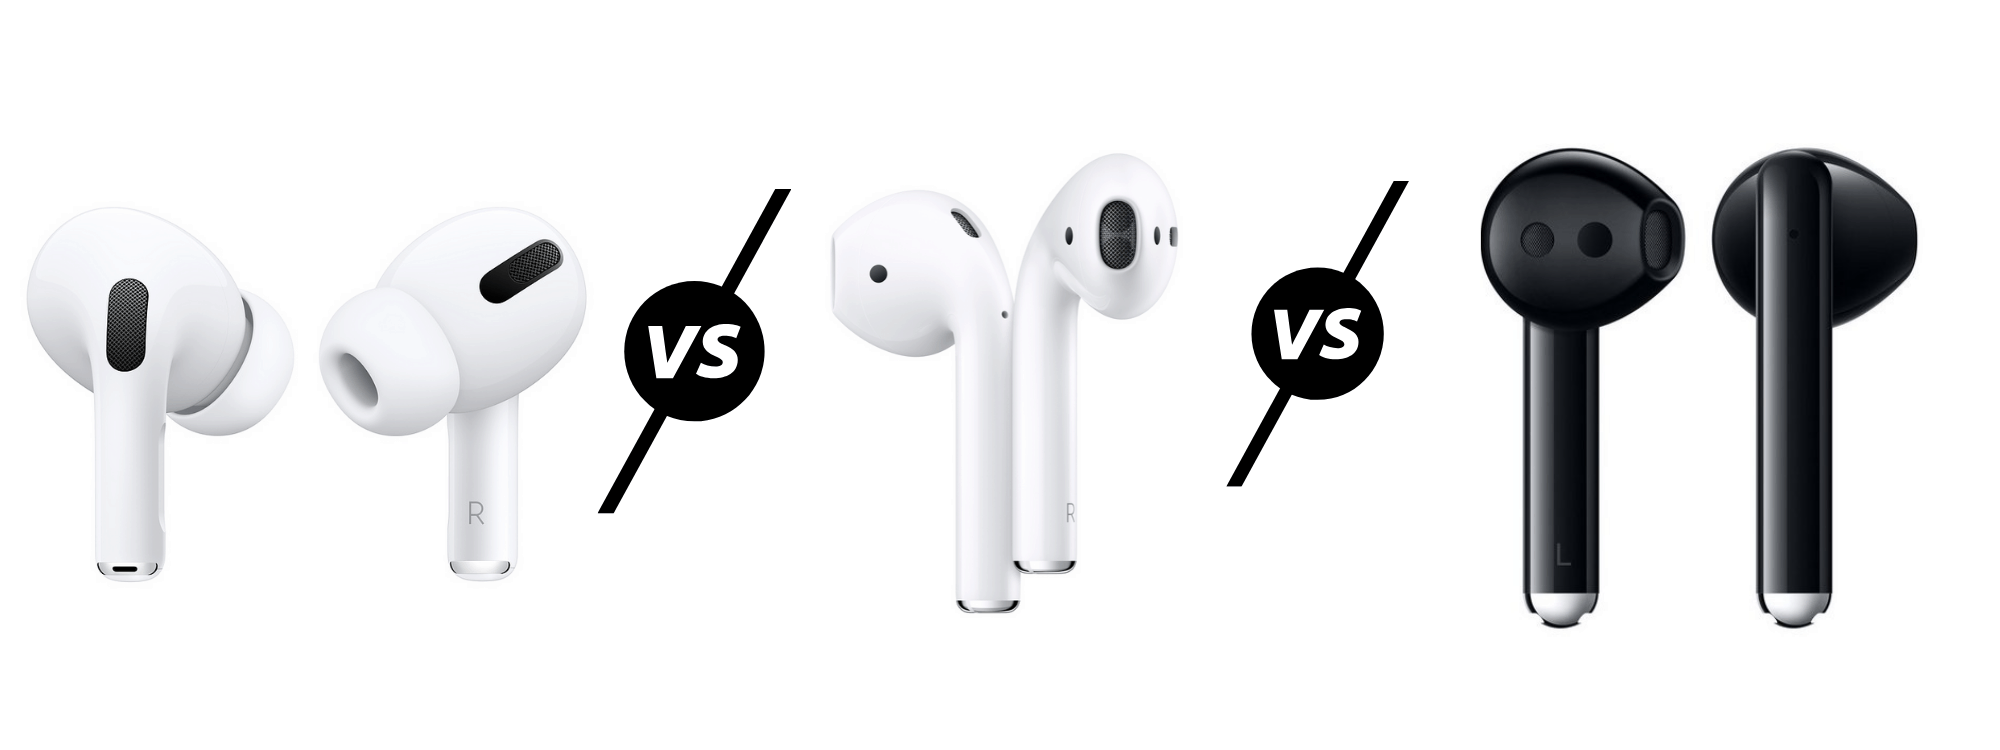 Apple AirPods Pro vs AirPods 2 vs Huawei Freebuds 3 Compared